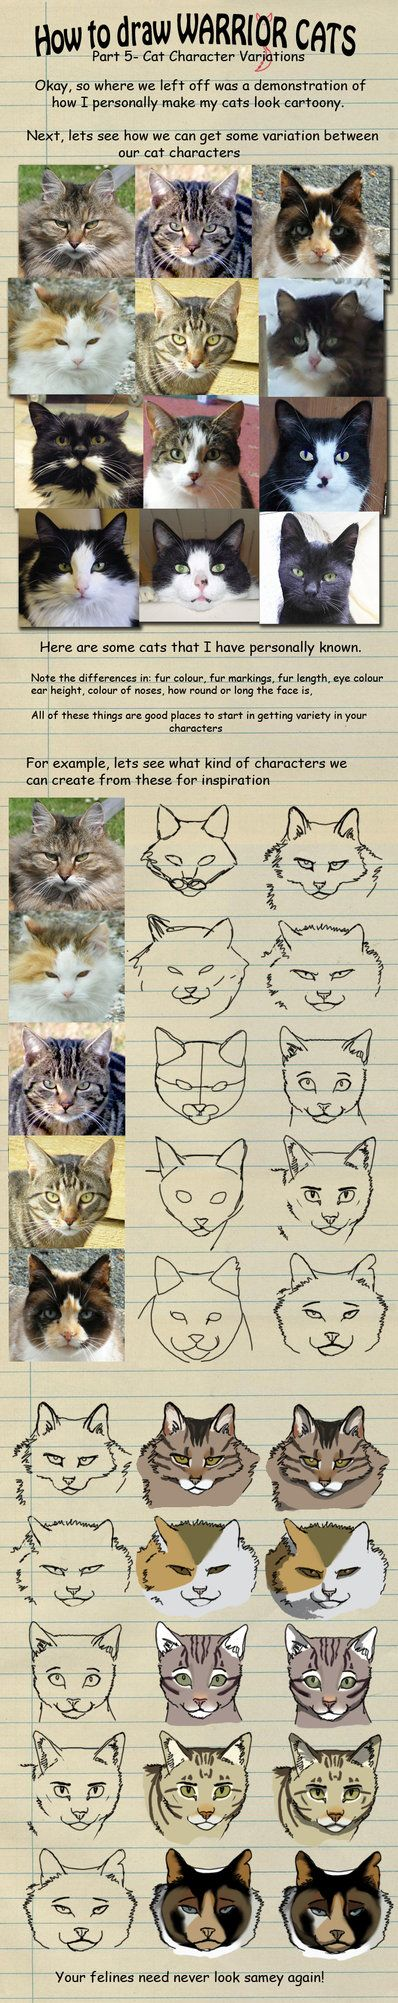 How to draw Warrior Cats pt 5 by *heylorlass on deviantART